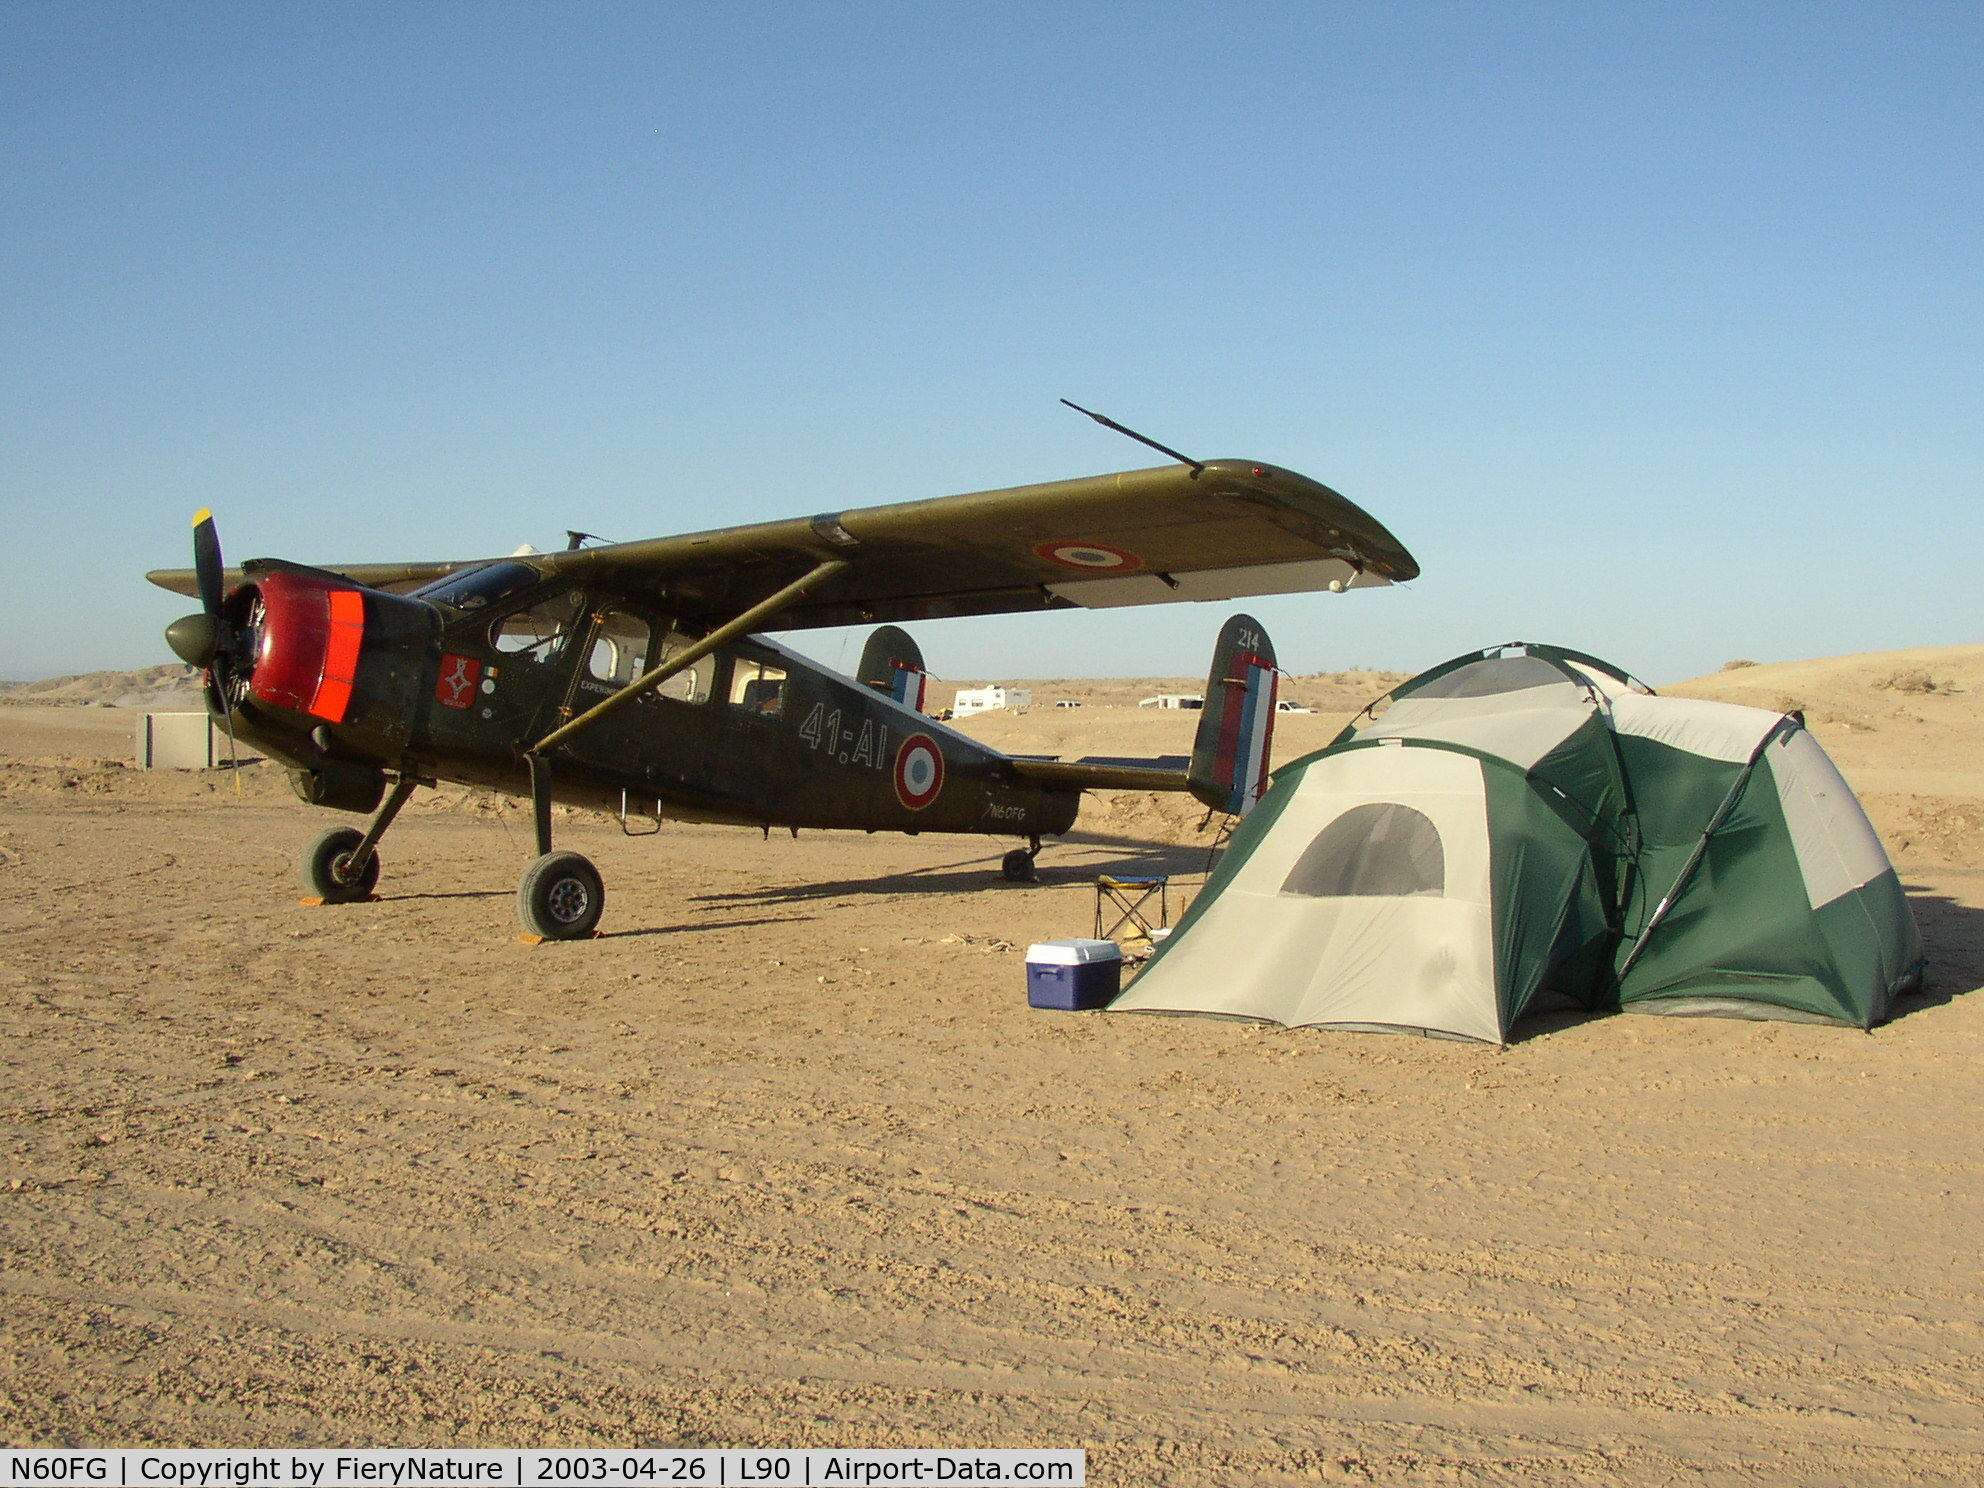 N60FG, Holste MH-1521M Broussard C/N 214, Camping under the wing of Broussard 214 at Ocotillo Wells